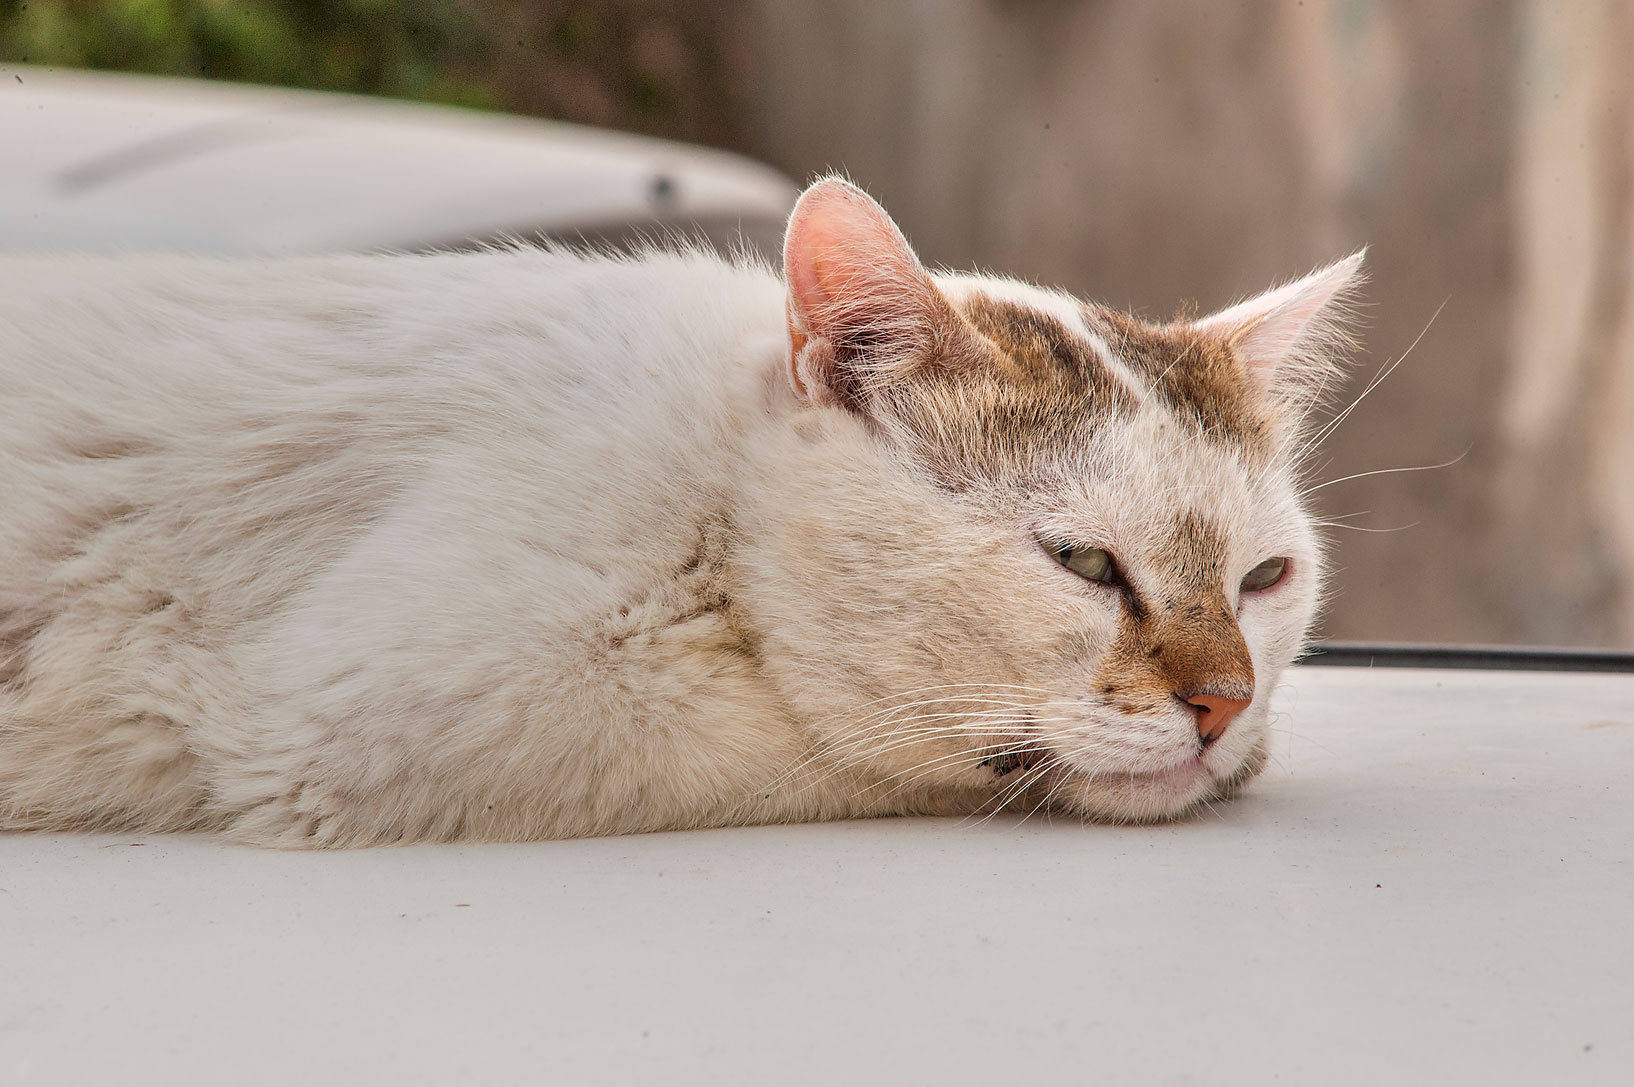 Whitish cat dreaming on a car on Umm Wishad St. in Musheirib area. Doha, Qatar